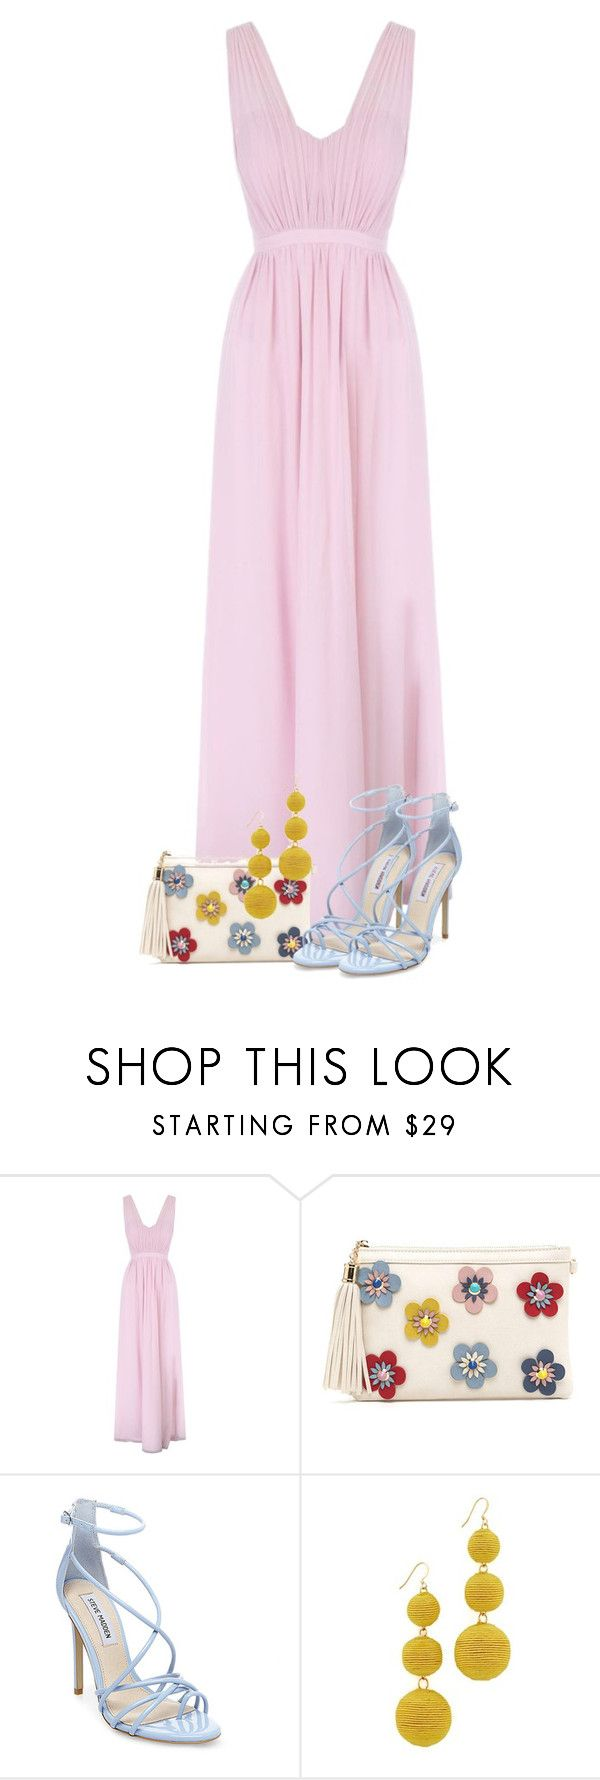 """""""Pink Pastel Maxi Dress"""" by majezy ❤ liked on Polyvore featuring Jane Norman, Steve Madden and Kenneth Jay Lane"""